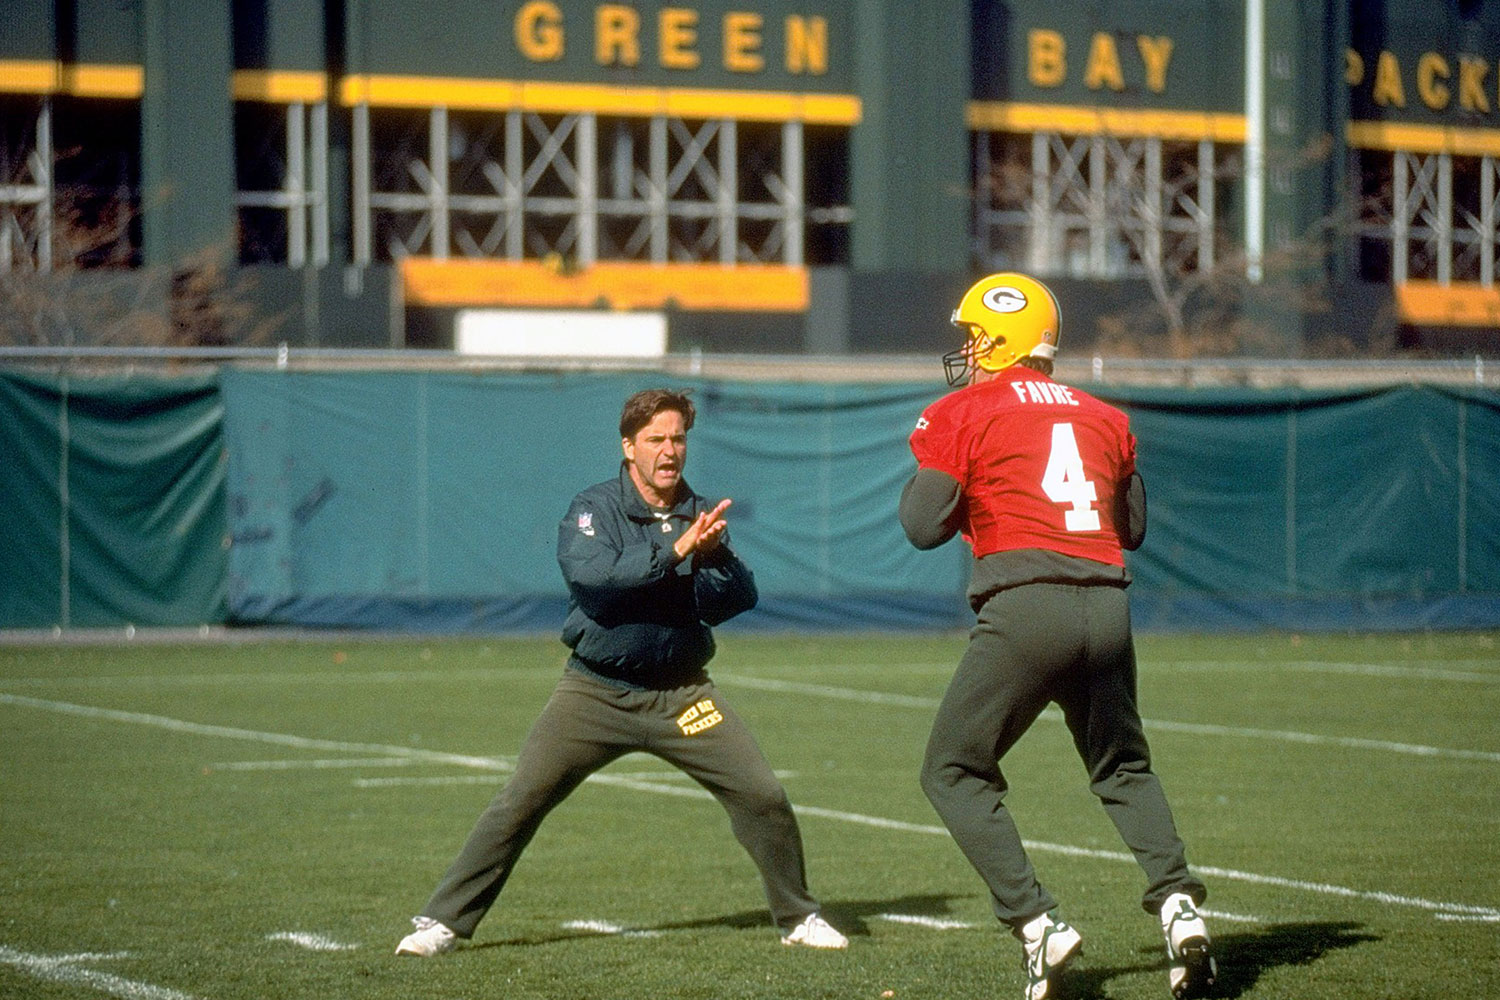 Brett Favre working with quarterbacks coach Steve Mariucci during practice outside of Lambeau Field.